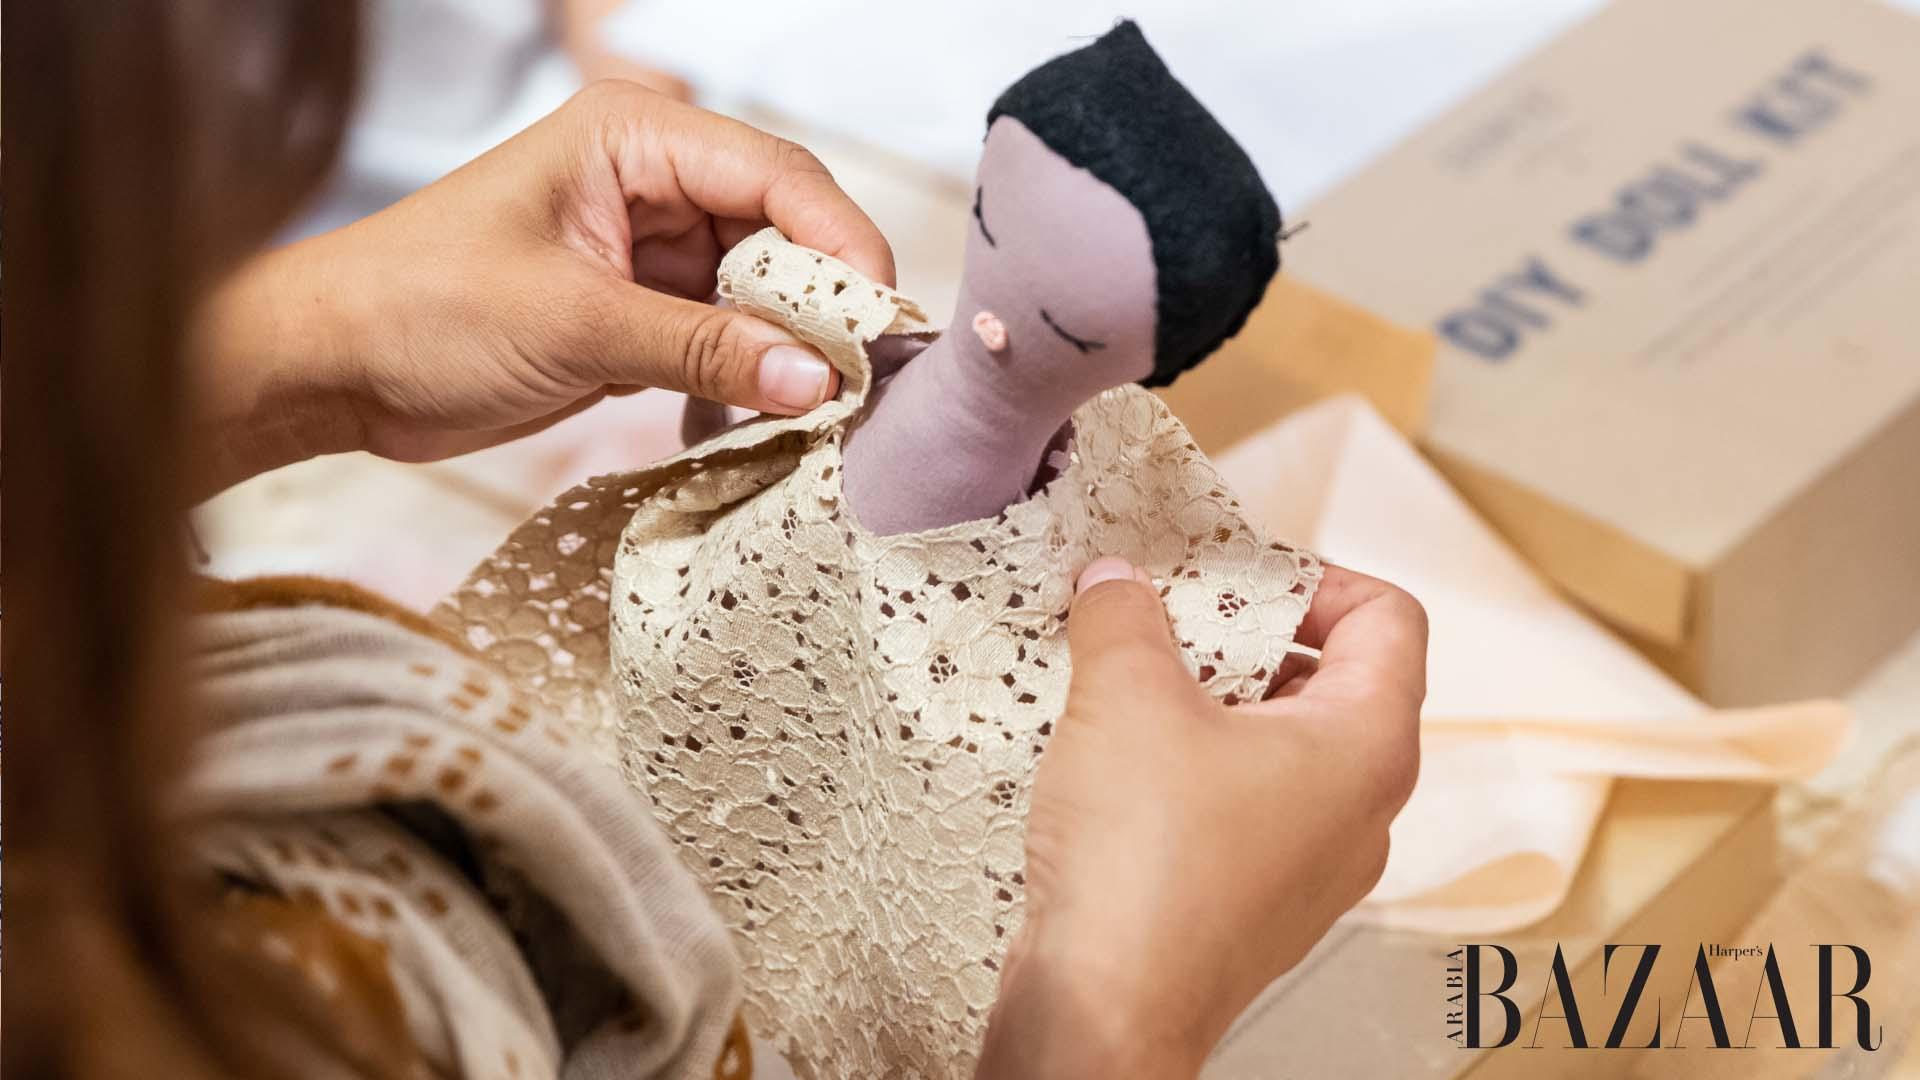 BAZAAR X Fendi Kids: An Afternoon Of Arts And Crafts For A Purpose